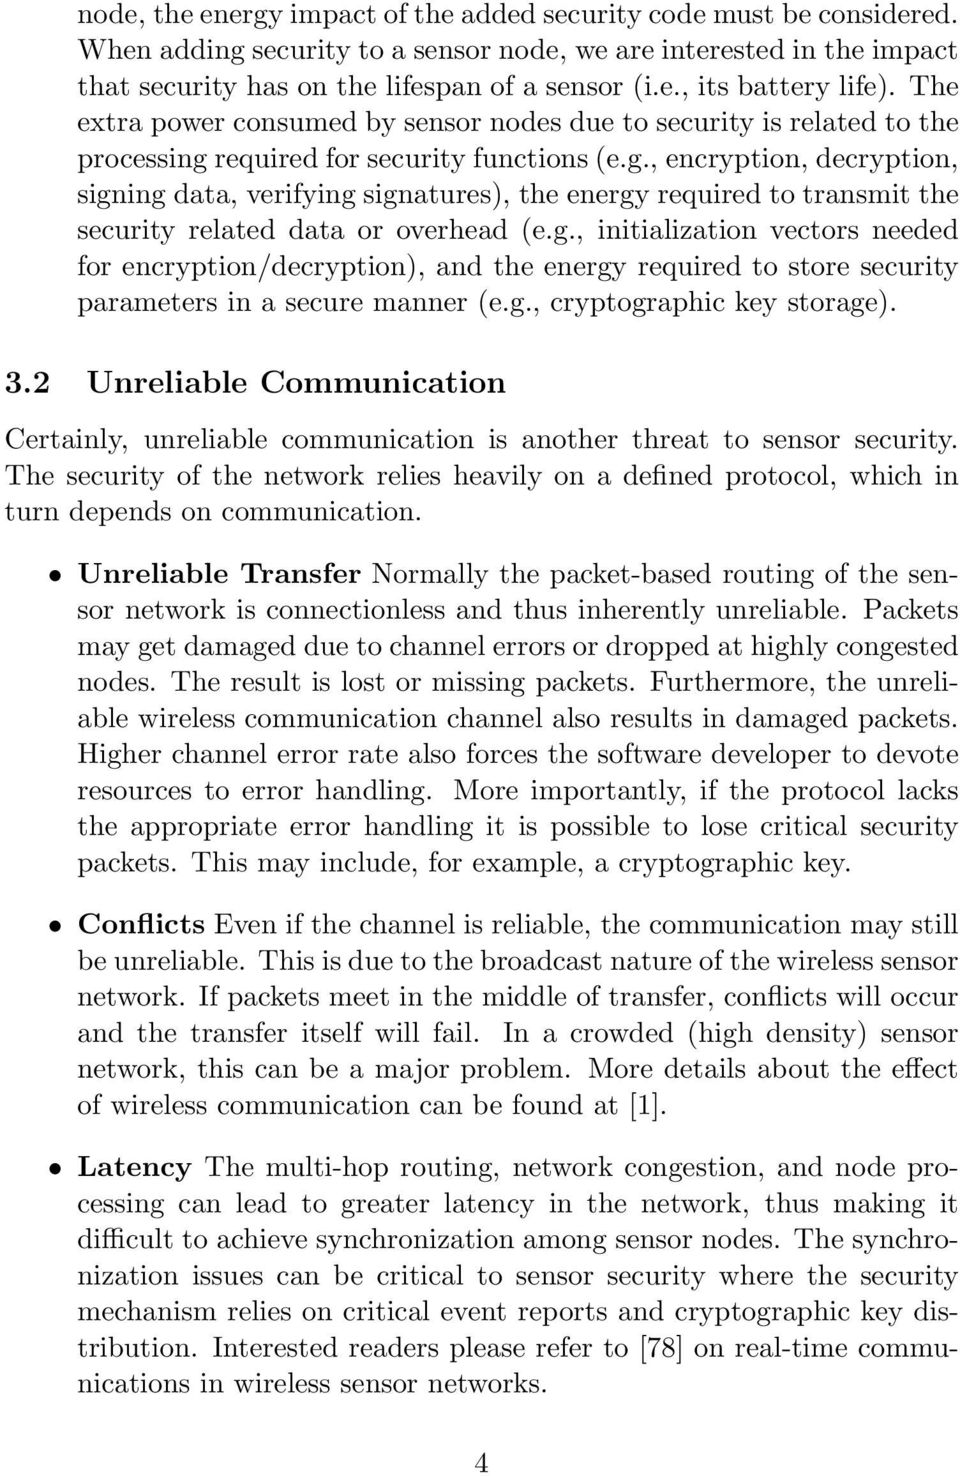 required for security functions (e.g., encryption, decryption, signing data, verifying signatures), the energy required to transmit the security related data or overhead (e.g., initialization vectors needed for encryption/decryption), and the energy required to store security parameters in a secure manner (e.